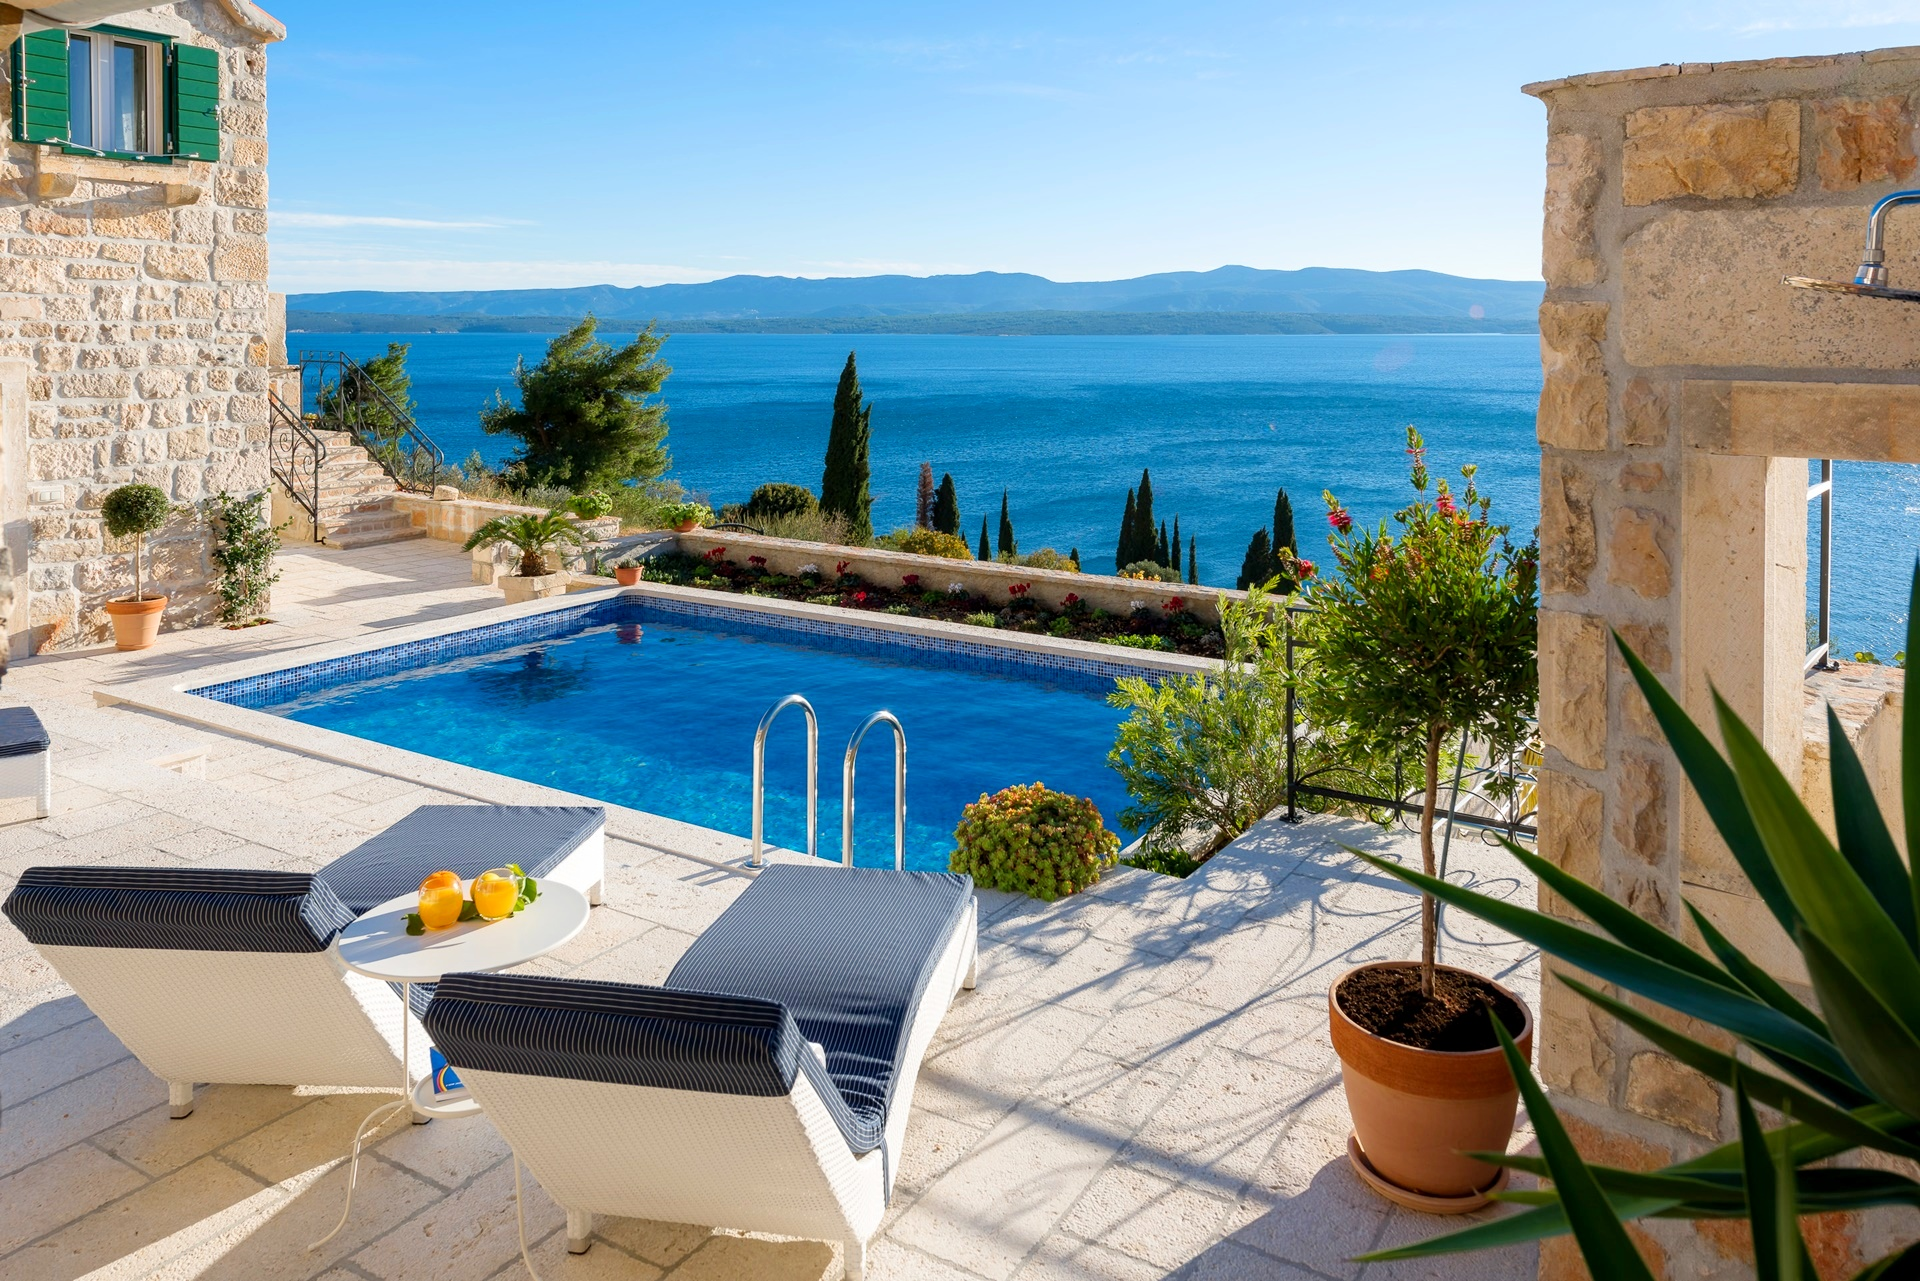 How to book your private villa holidays